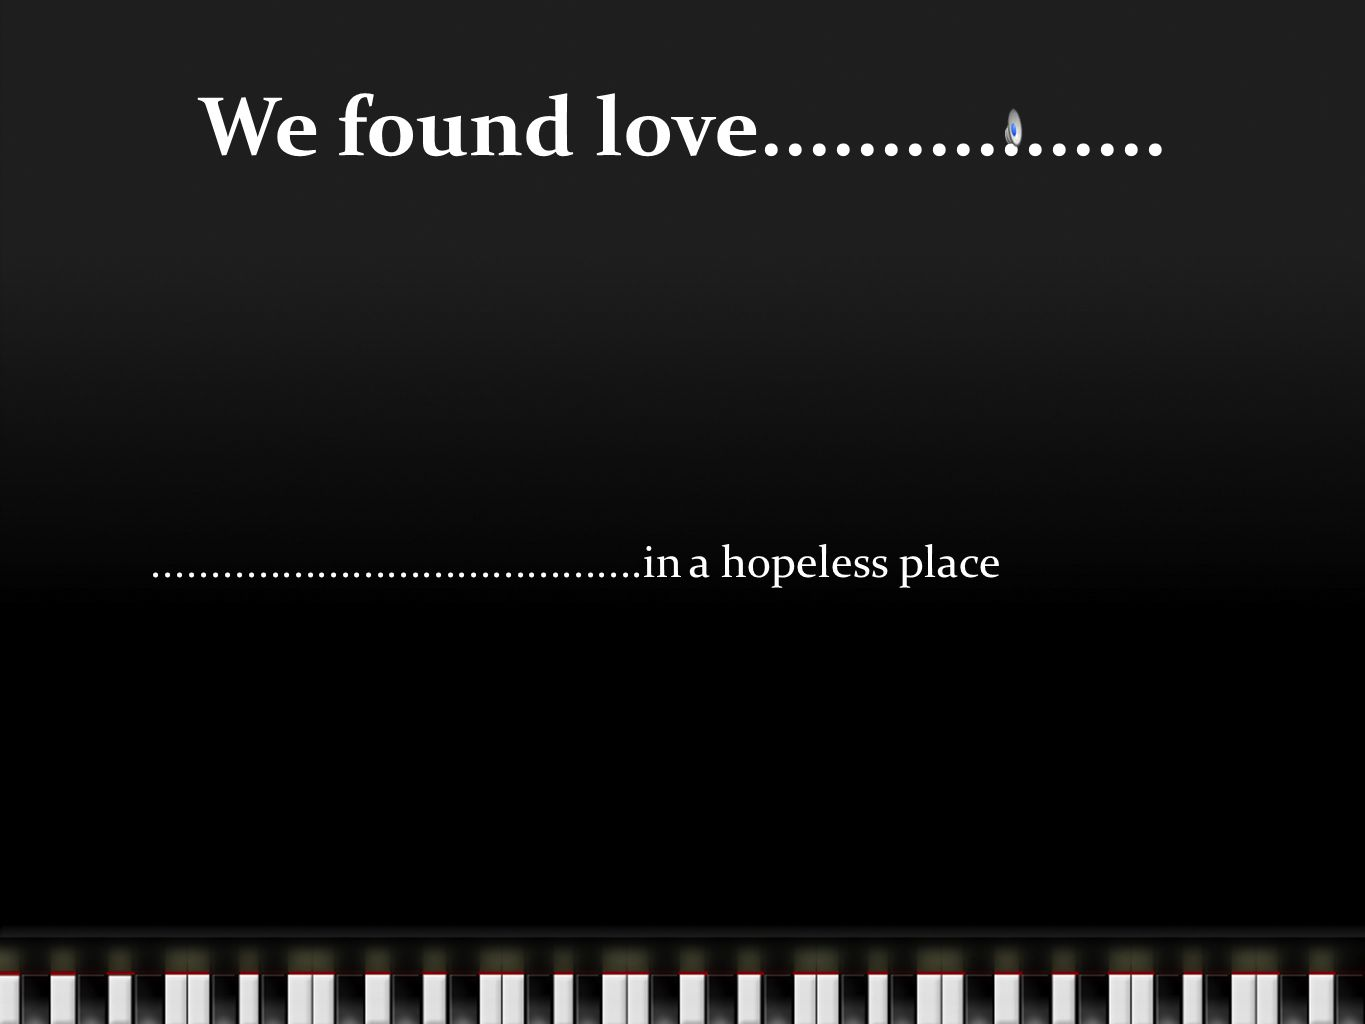 We found love...........................................................in a hopeless place